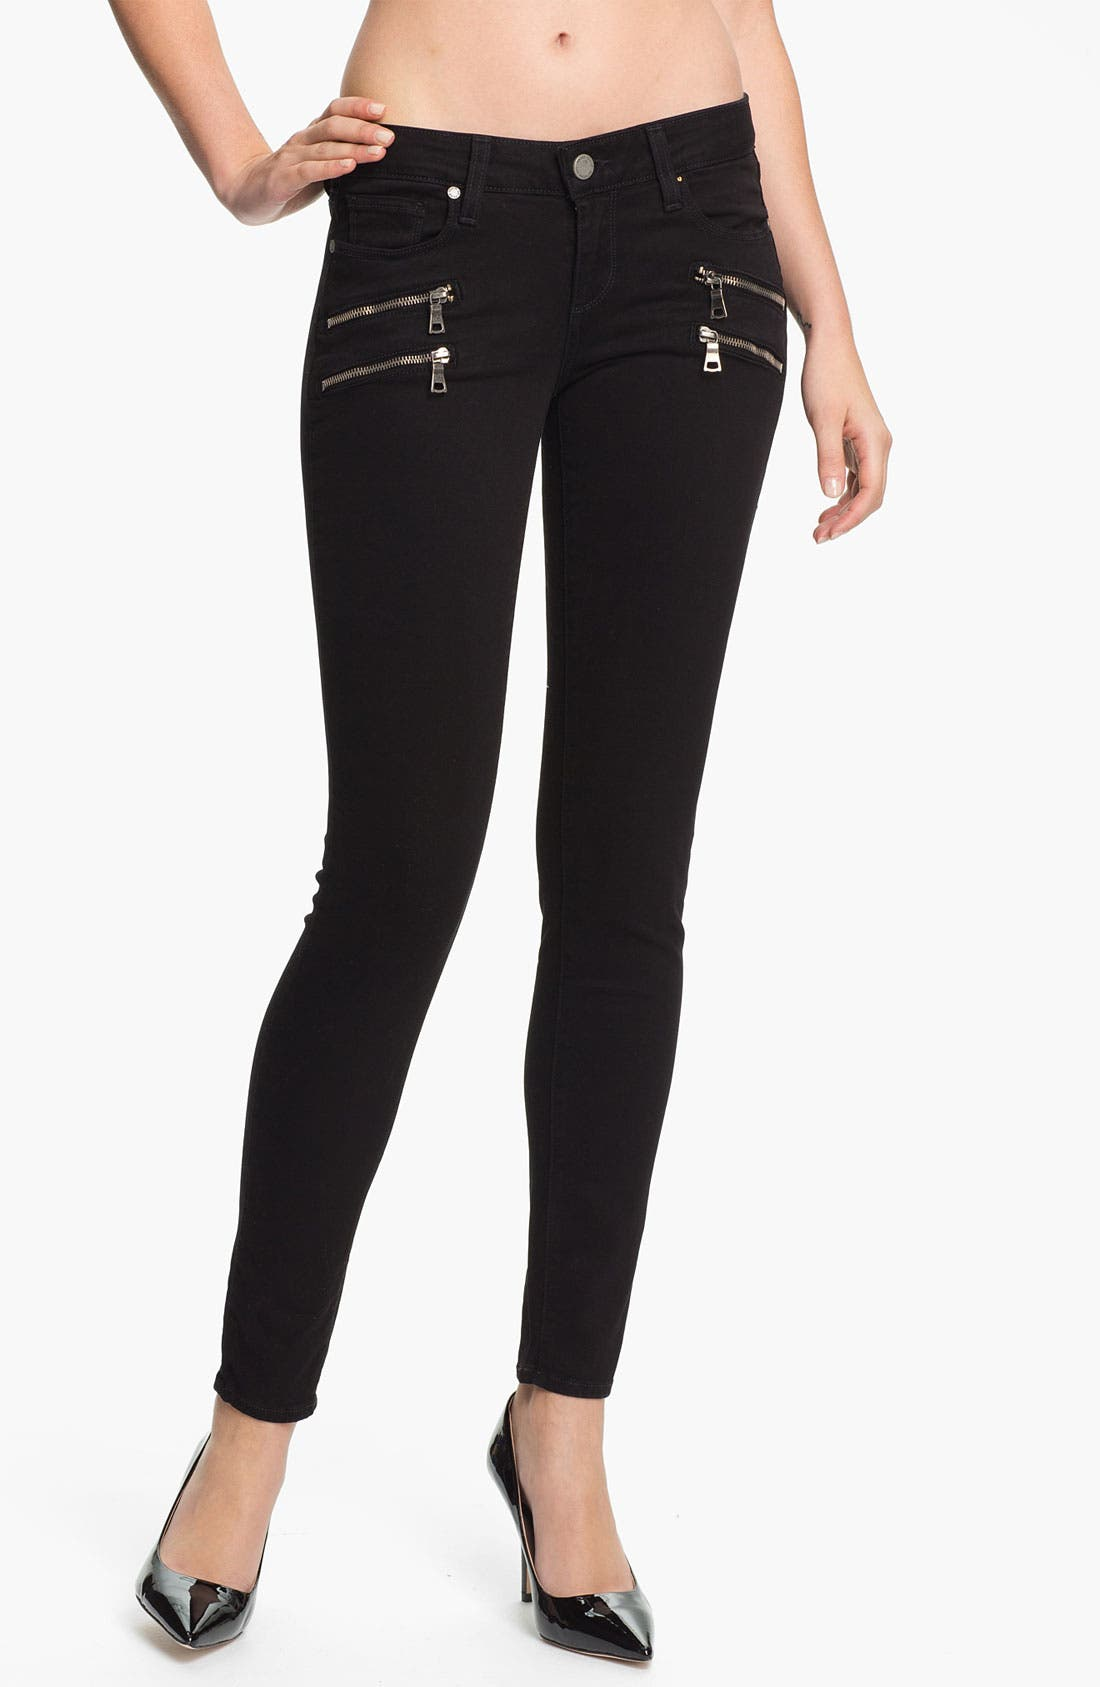 Alternate Image 1 Selected - Paige Denim 'Edgemont' Skinny Jeans (Black)